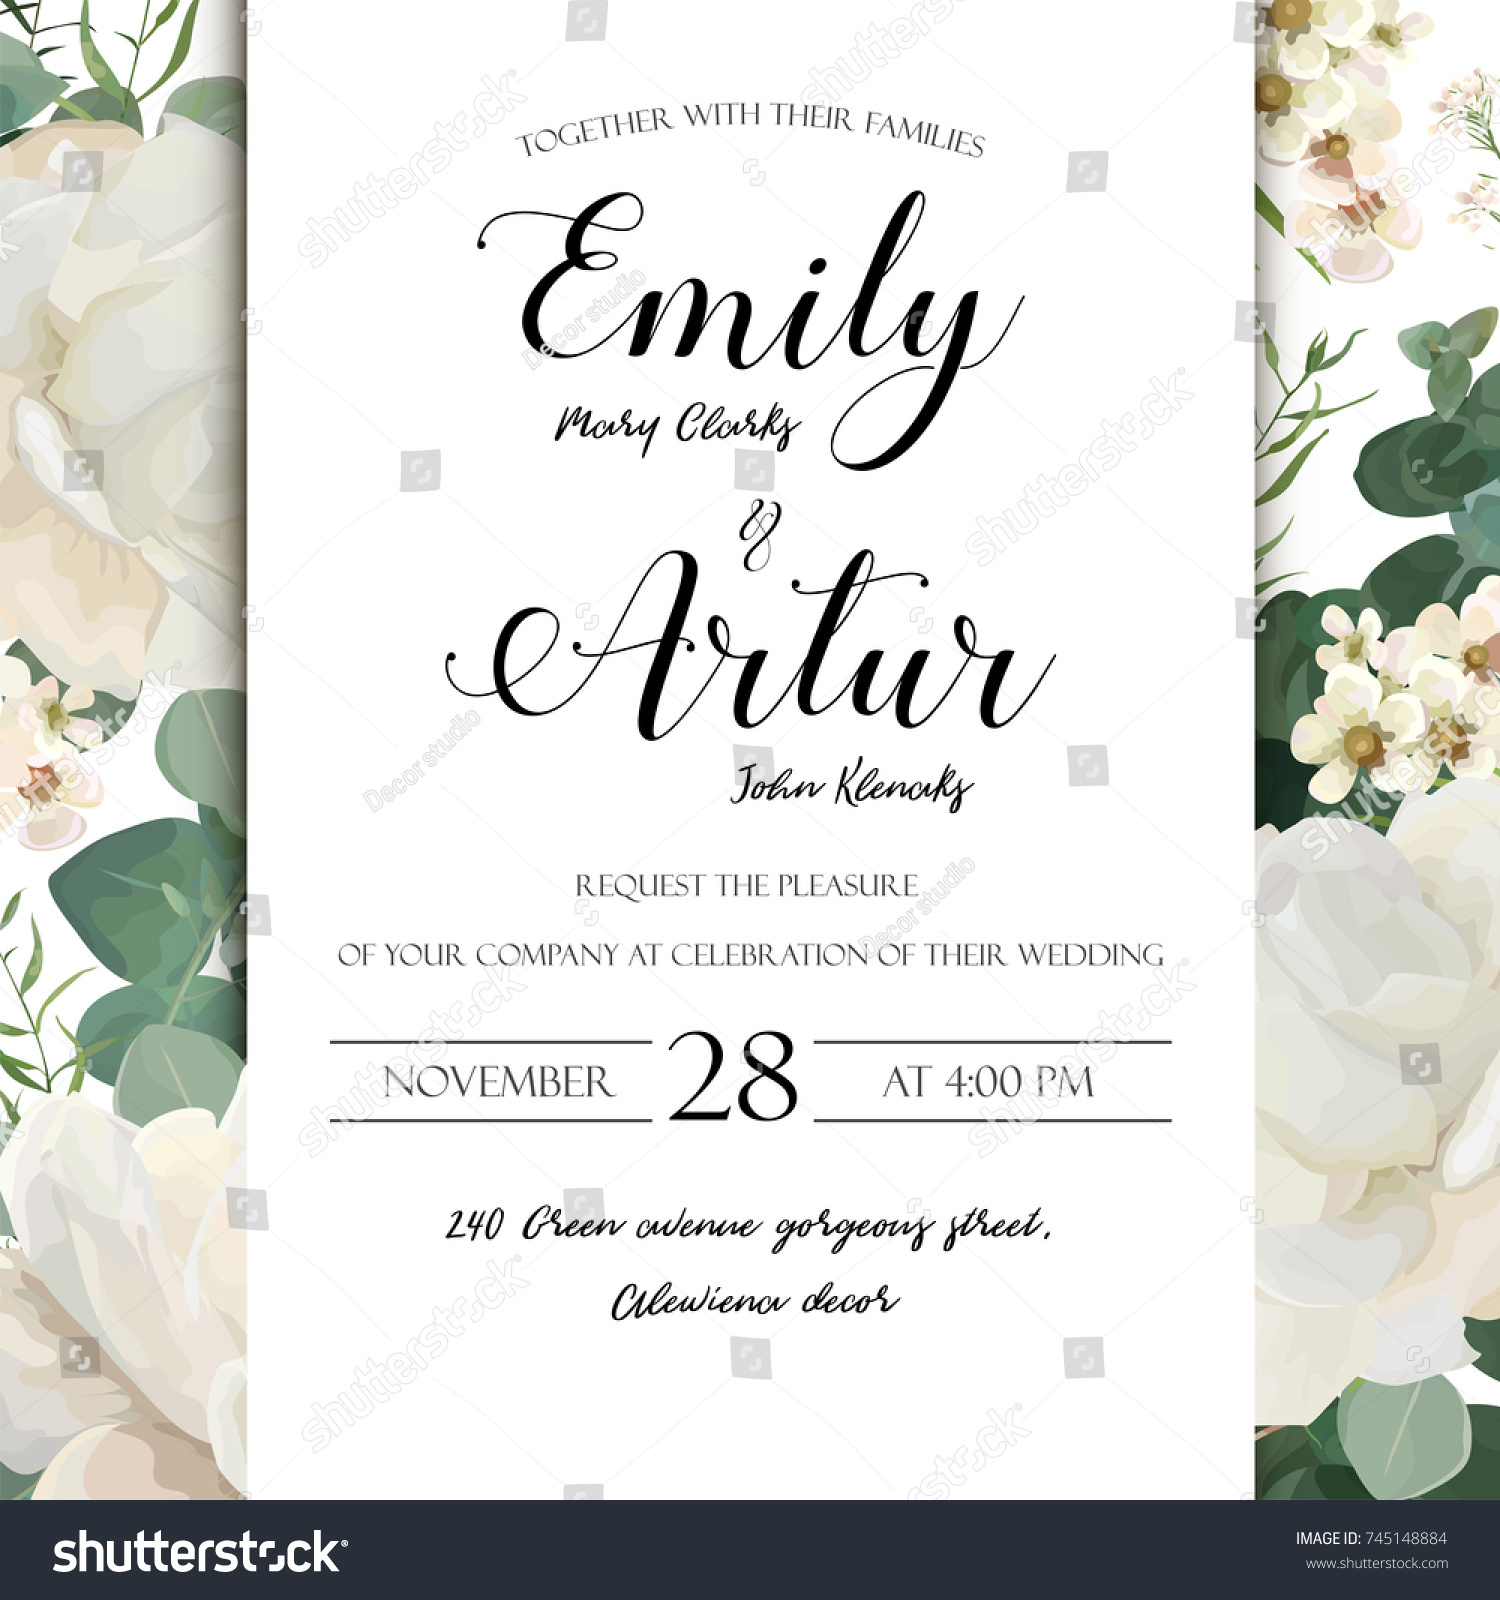 Floral Wedding Invitation Save Date Card Stock Vector (Royalty Free ...